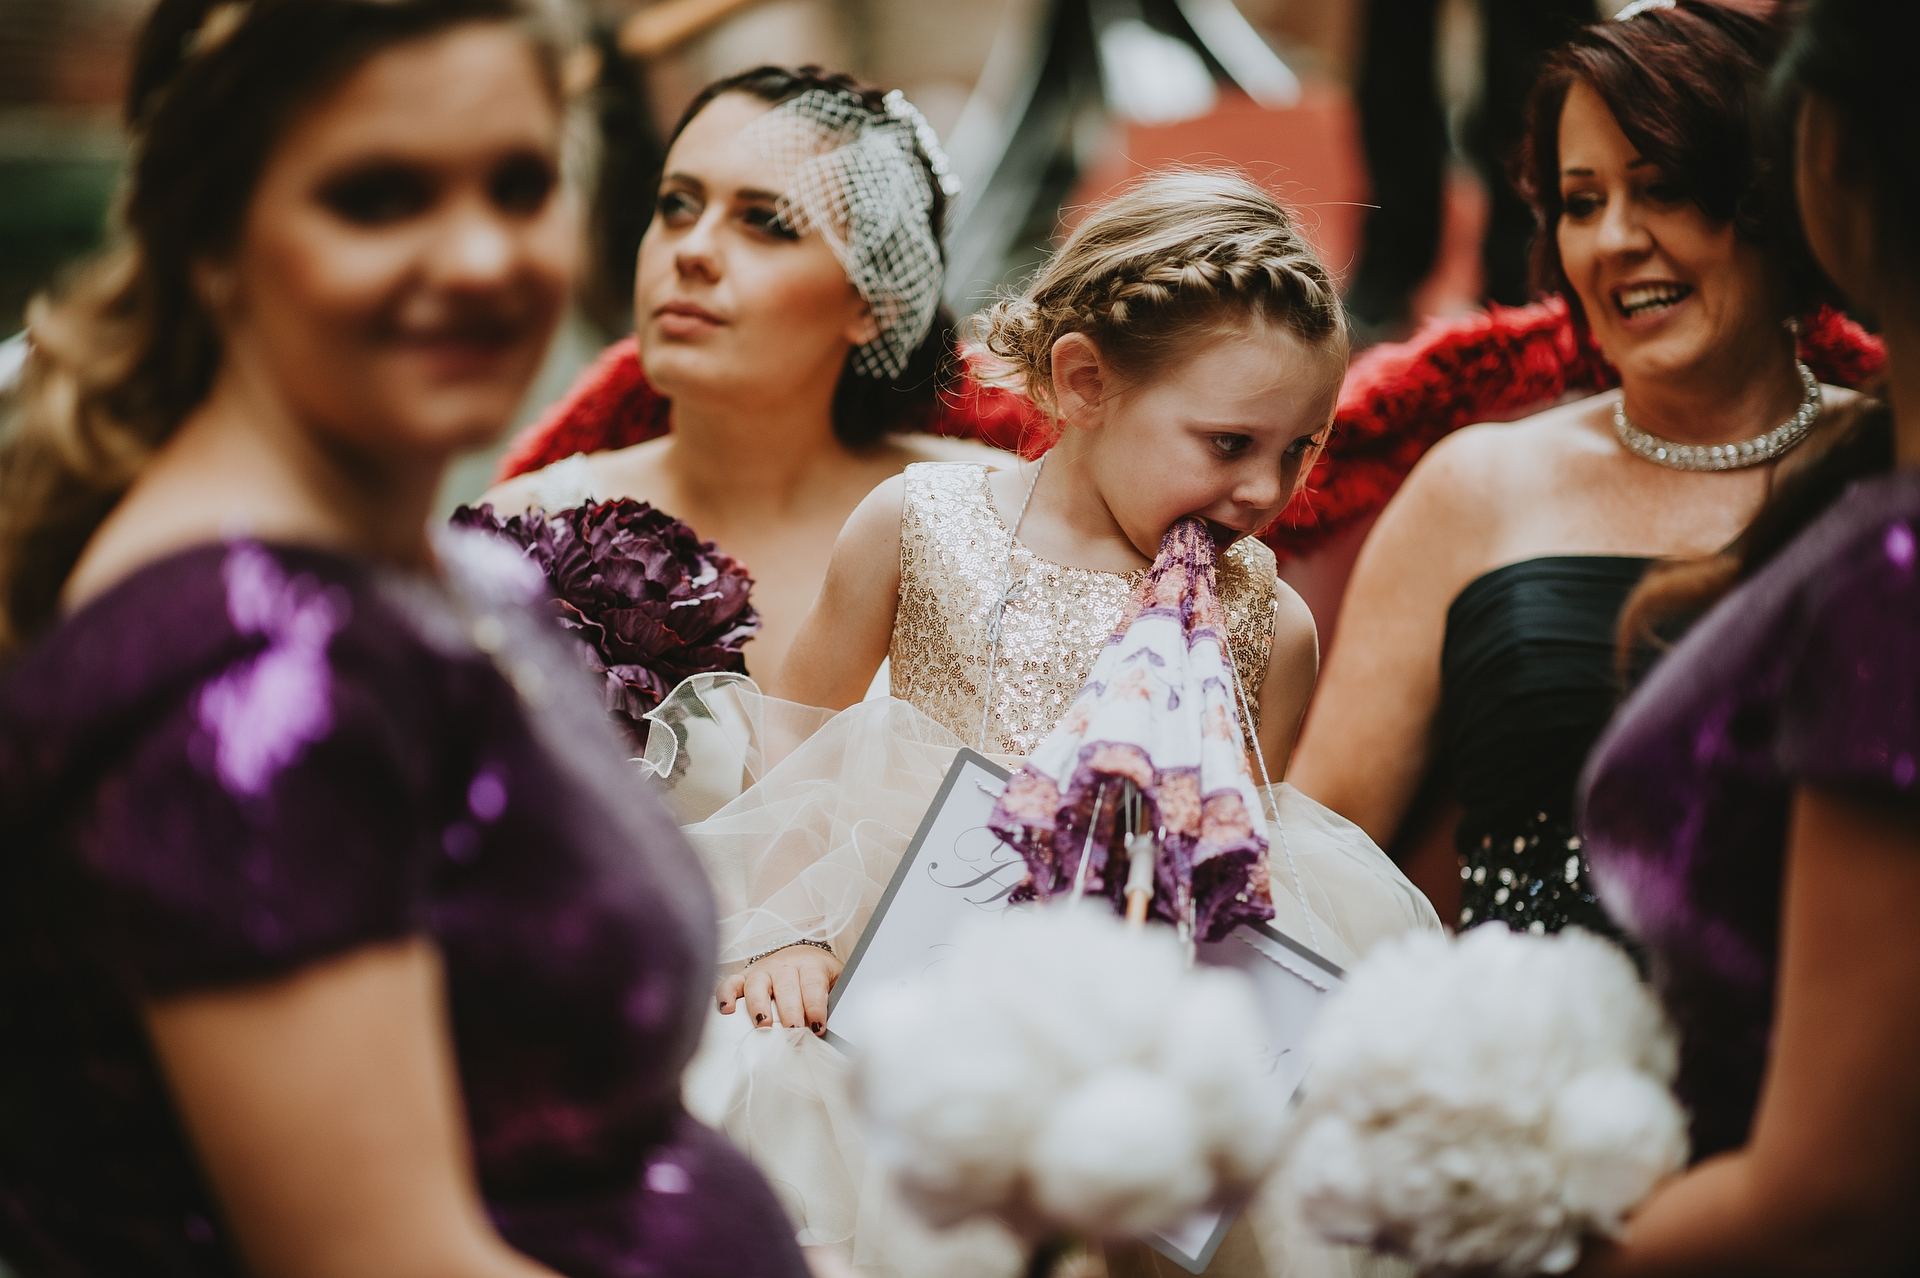 Elopements in Torcello - Italian Wedding Images | While moving by taxi, the little girl begins to eat the umbrella she holds in her hand